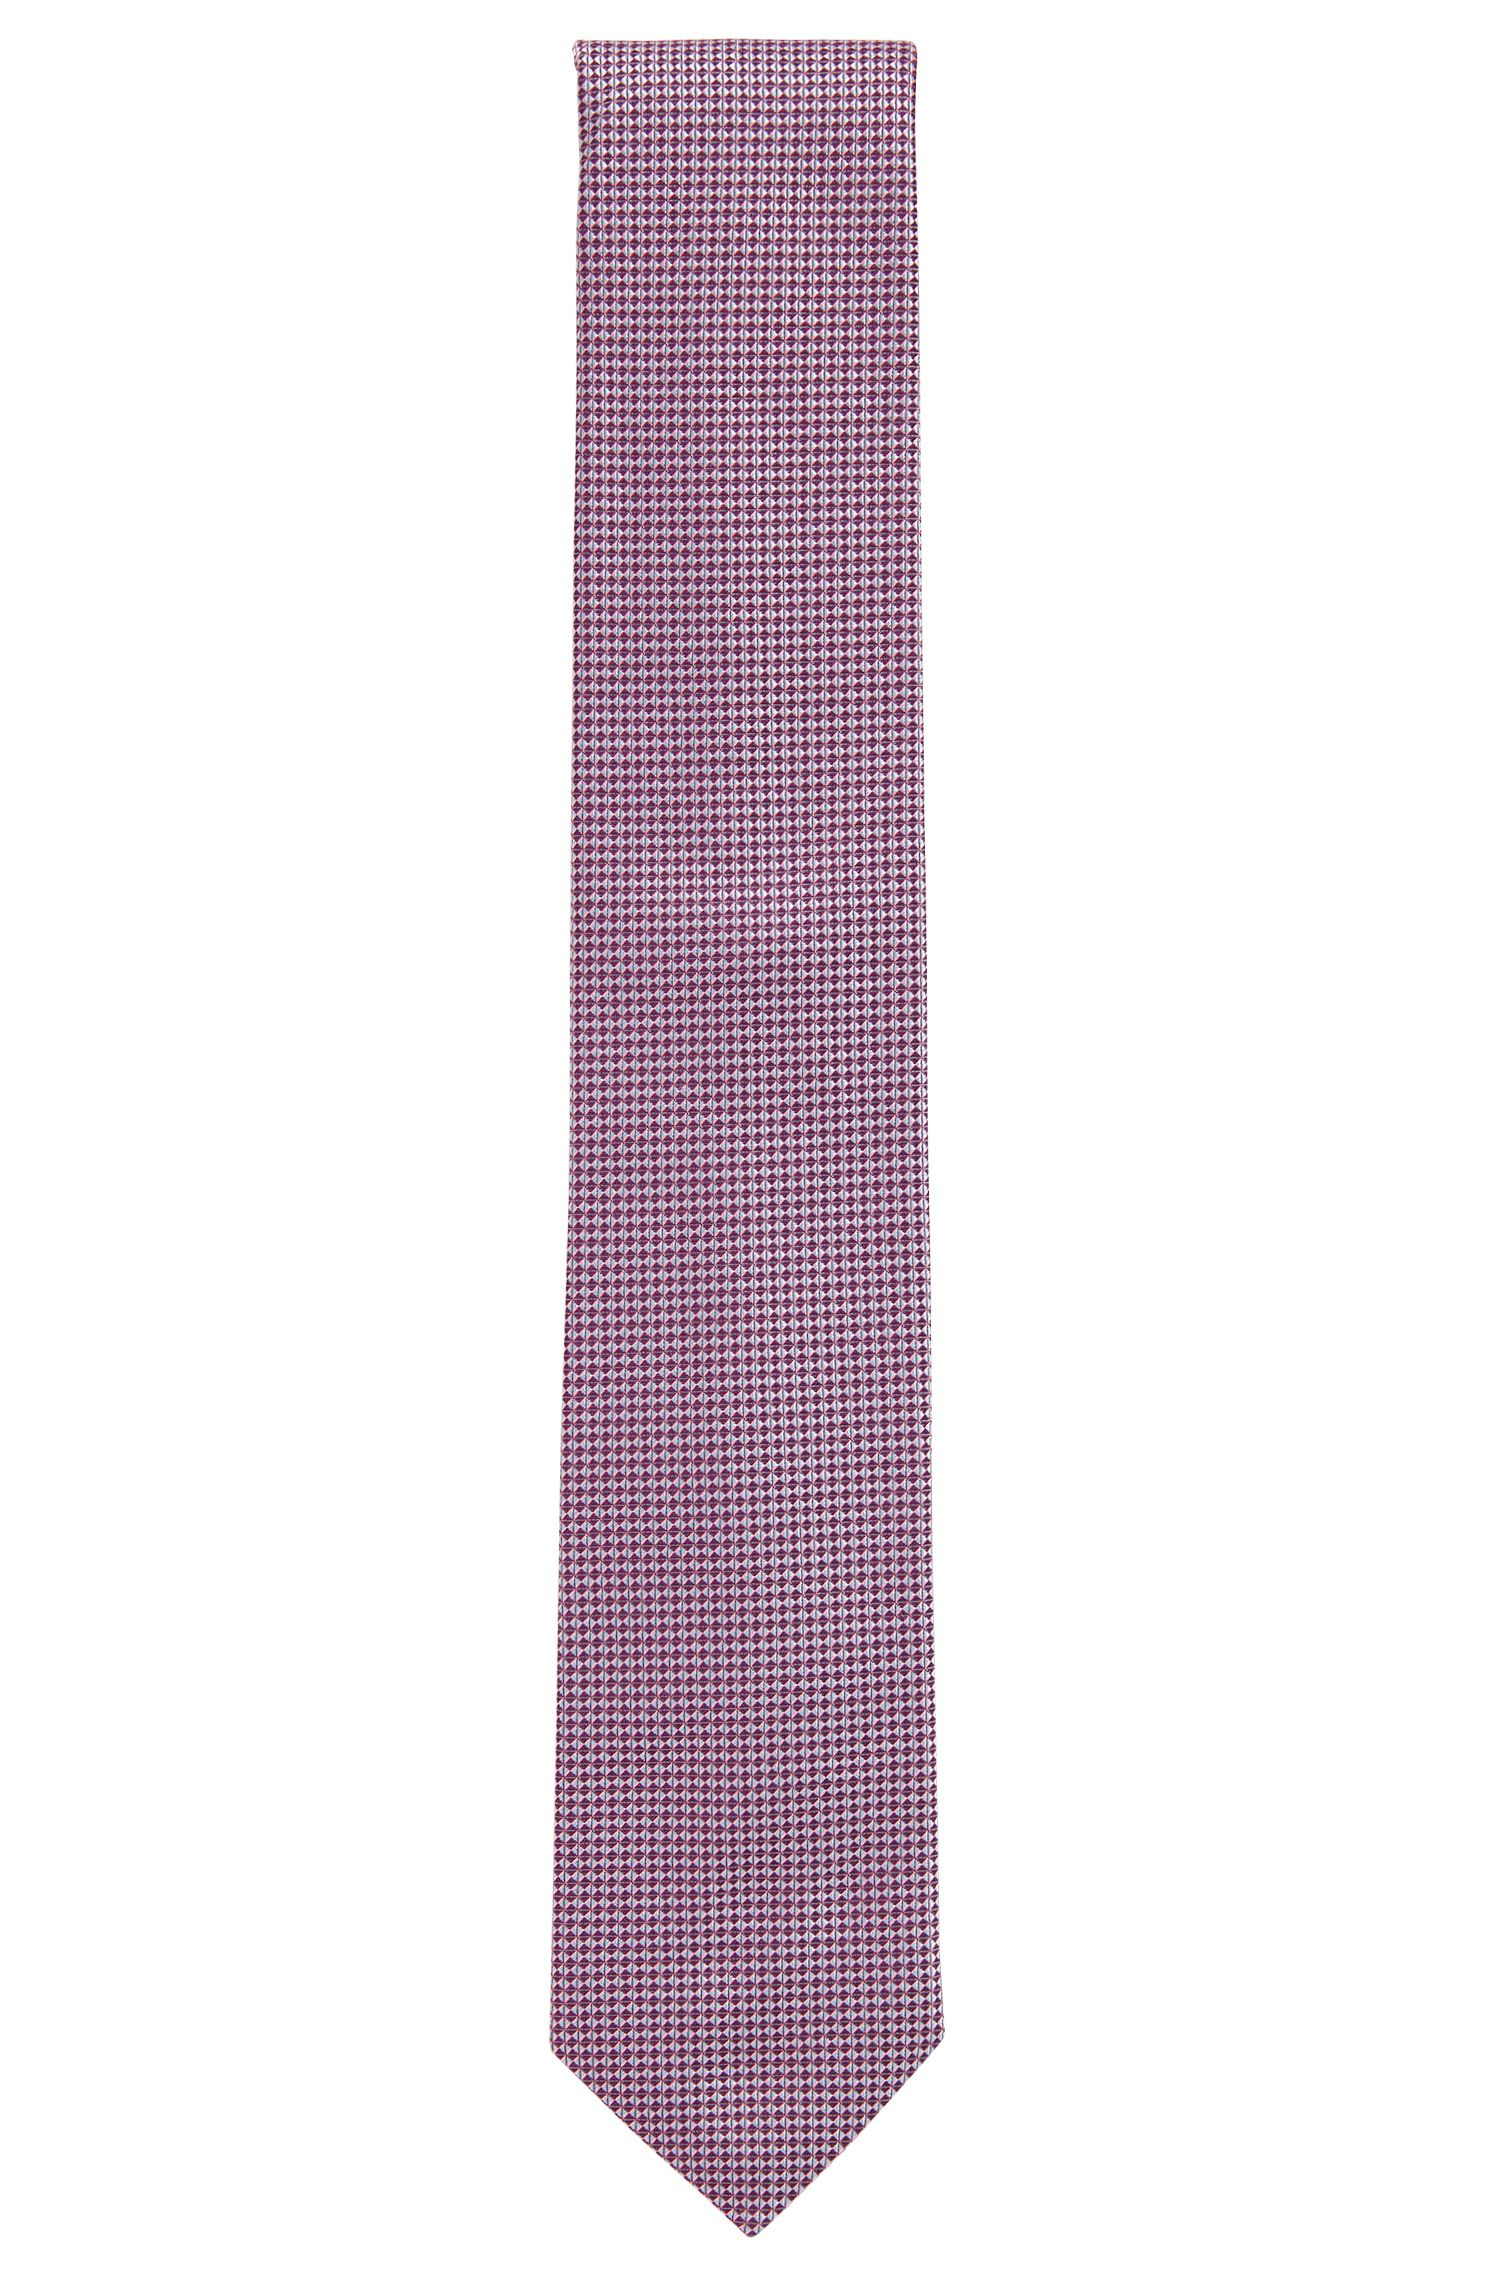 Jacquard tie in patterned pure silk